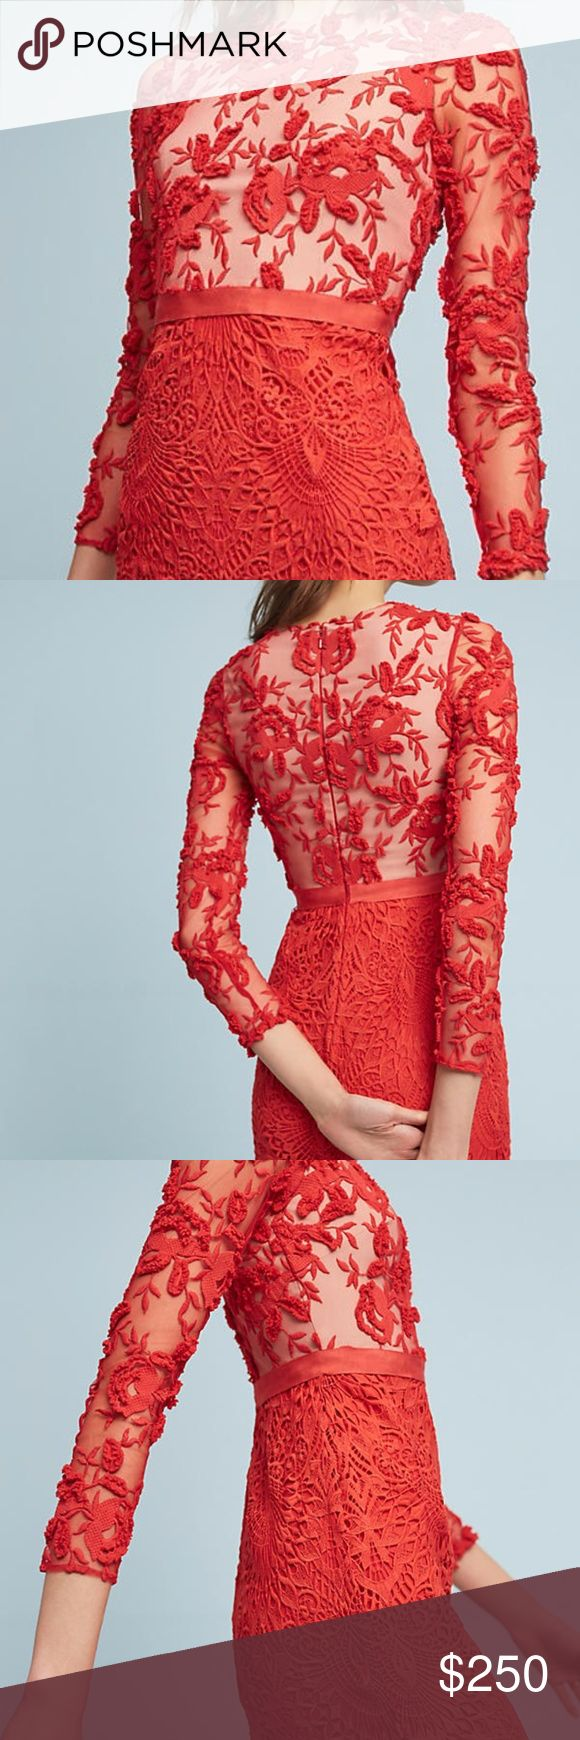 """NWT Anthropologie Serena by ML Monique Lhuillier Get ready to turn heads in a striking red sheath dress with delicate lace detail.  For fit advice, versatility tips or outfit inspiration, email personalstylist@anthropologie.com today.  Hide  Polyester; lace overlay Sheath silhouette Embroidered lace detail Back zip Dry clean Imported Dimensions  Falls 36"""" from shoulder Model Notes  Model is 5'10"""" Anthropologie Dresses Mini"""